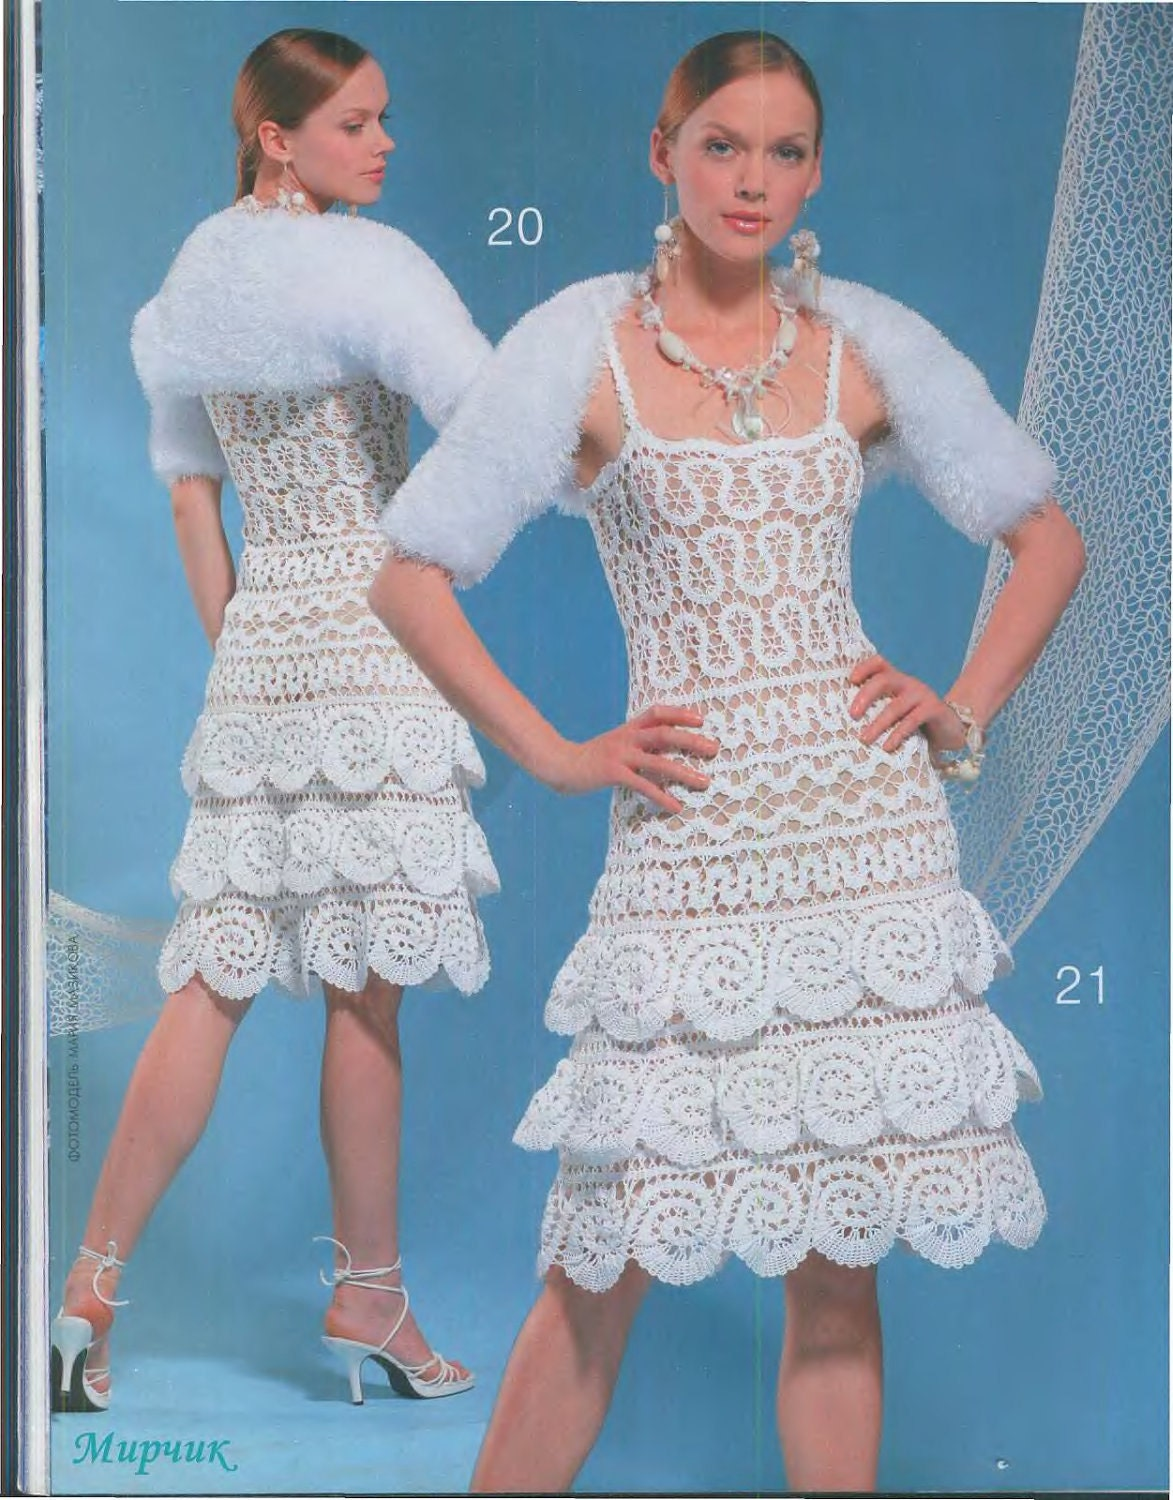 Find Me All The Crochet Patterns For Wedding Dresses